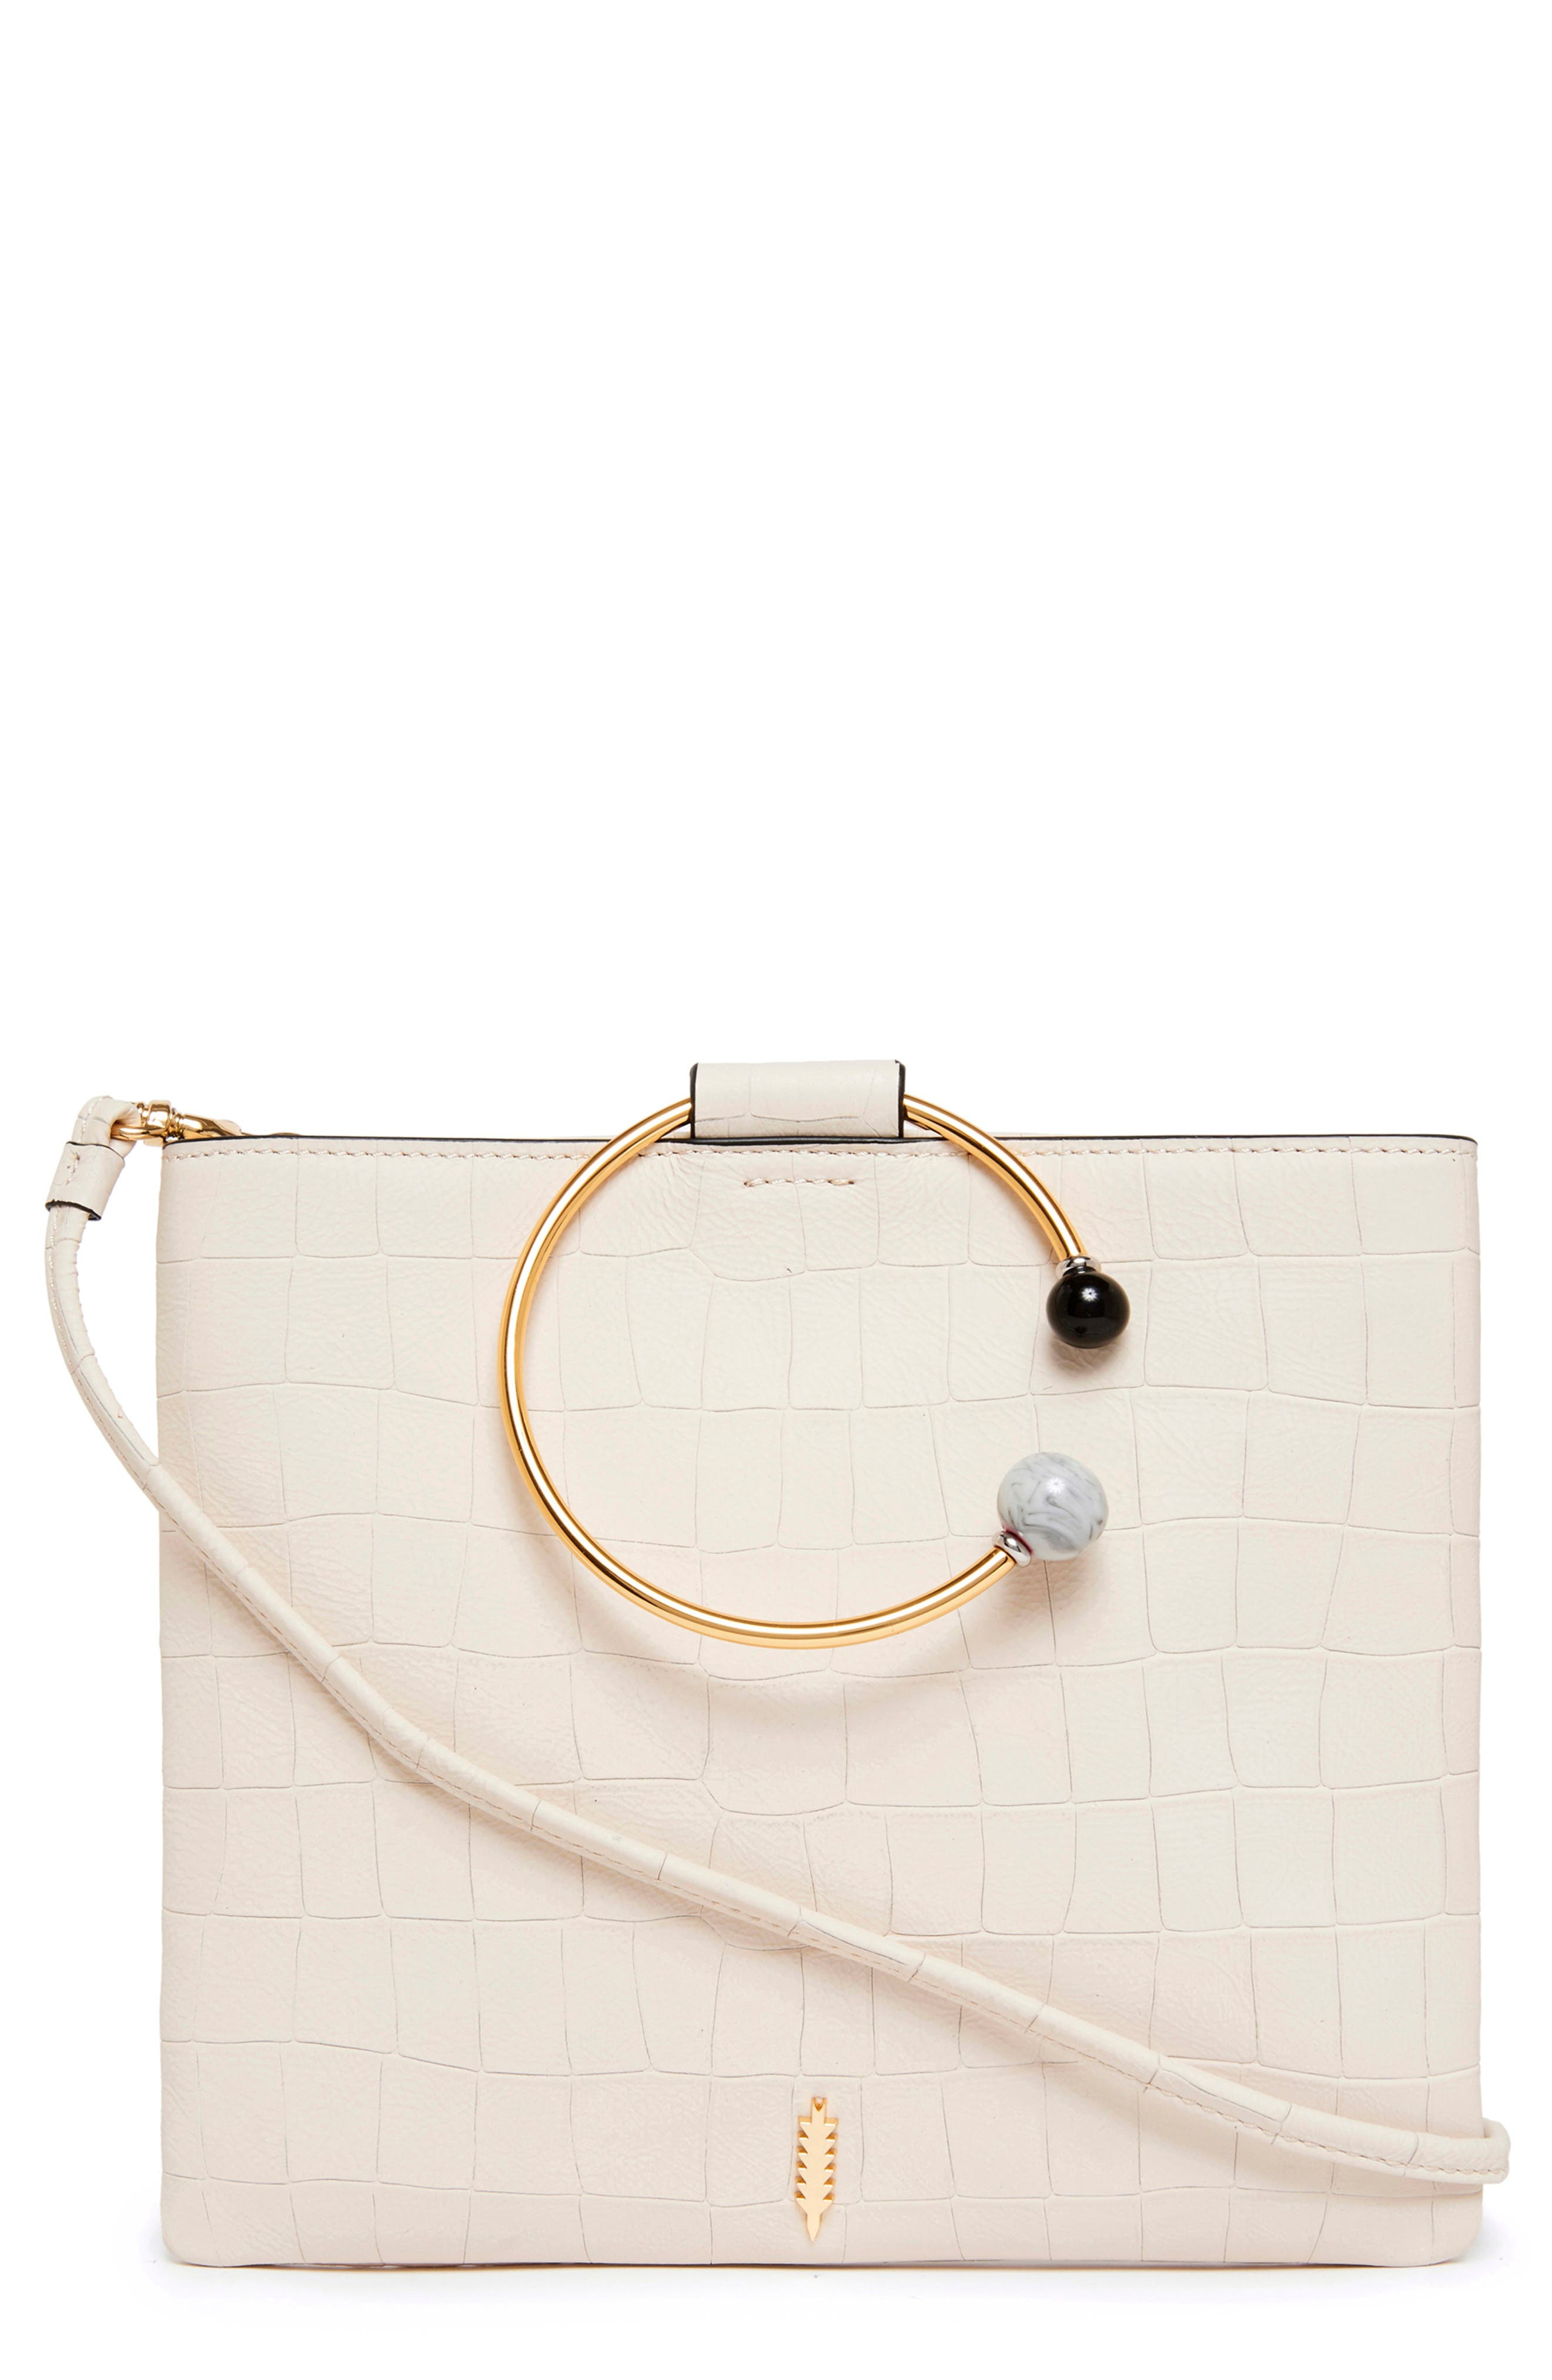 Image of THACKER Le Pouch Croc Embossed Leather Beaded Ring Shoulder Bag